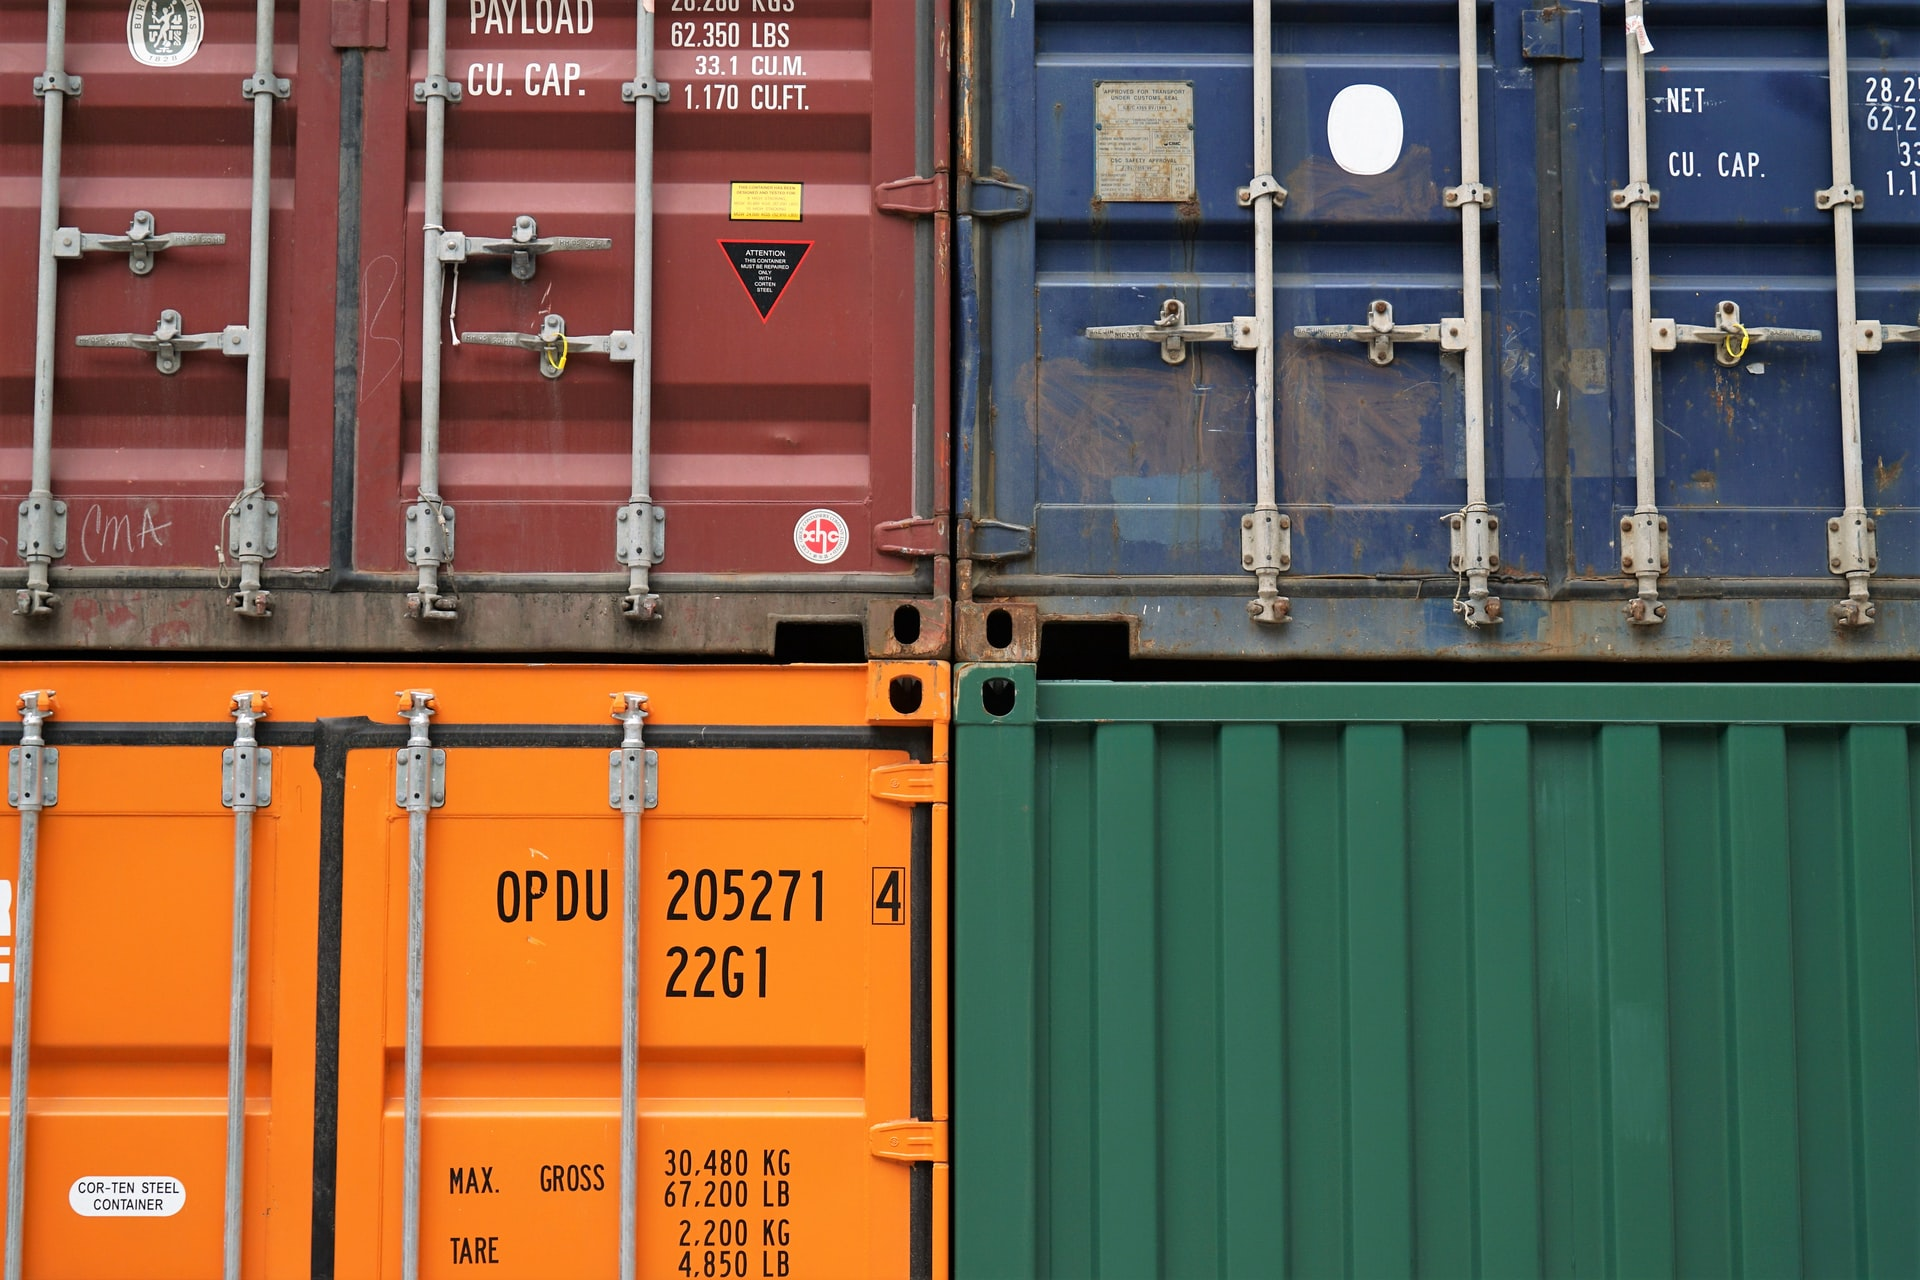 Foreign Trade Deficit Worsens to N2.39 trillion amid Further Increase in Import Bill in Q3 2020